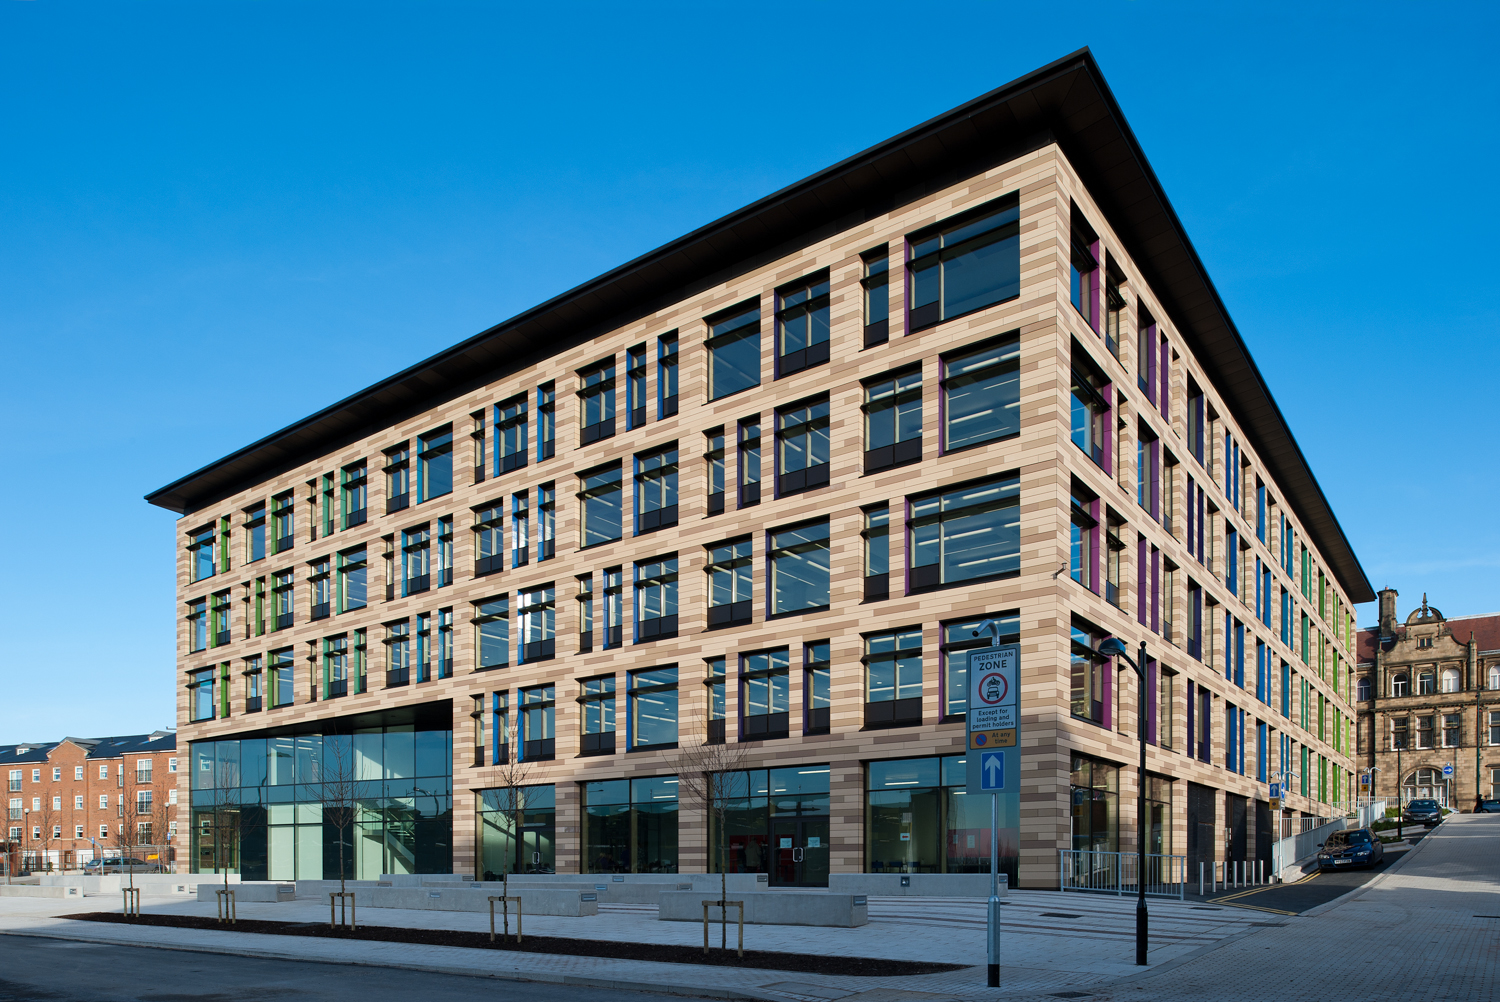 Wakefield One | Architects: Cartwright Pickard | Main Contractor: Morgan Sindall